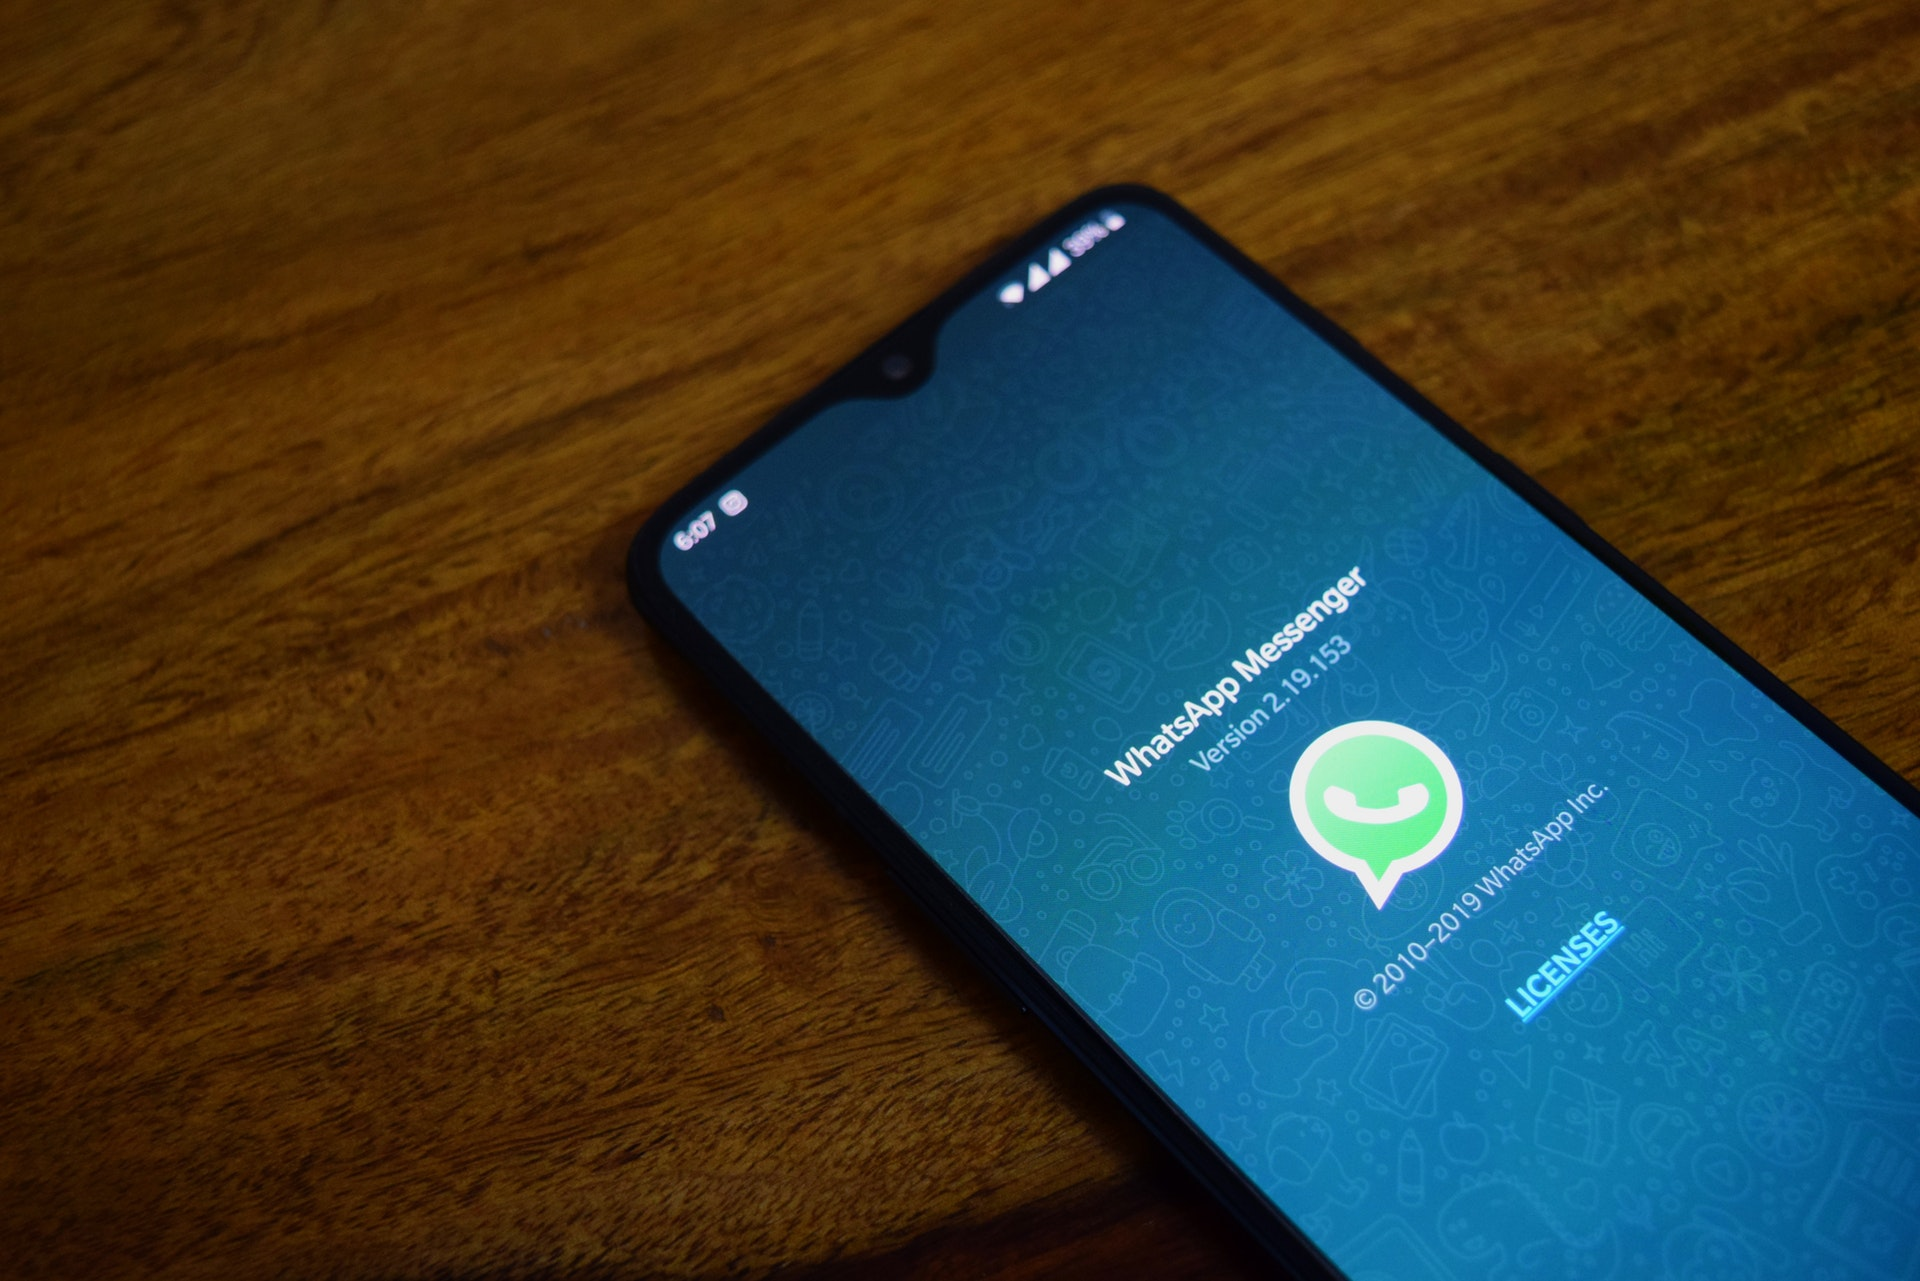 New treaty will allow UK to request data, not backdoor, from US social media companies like WhatsApp